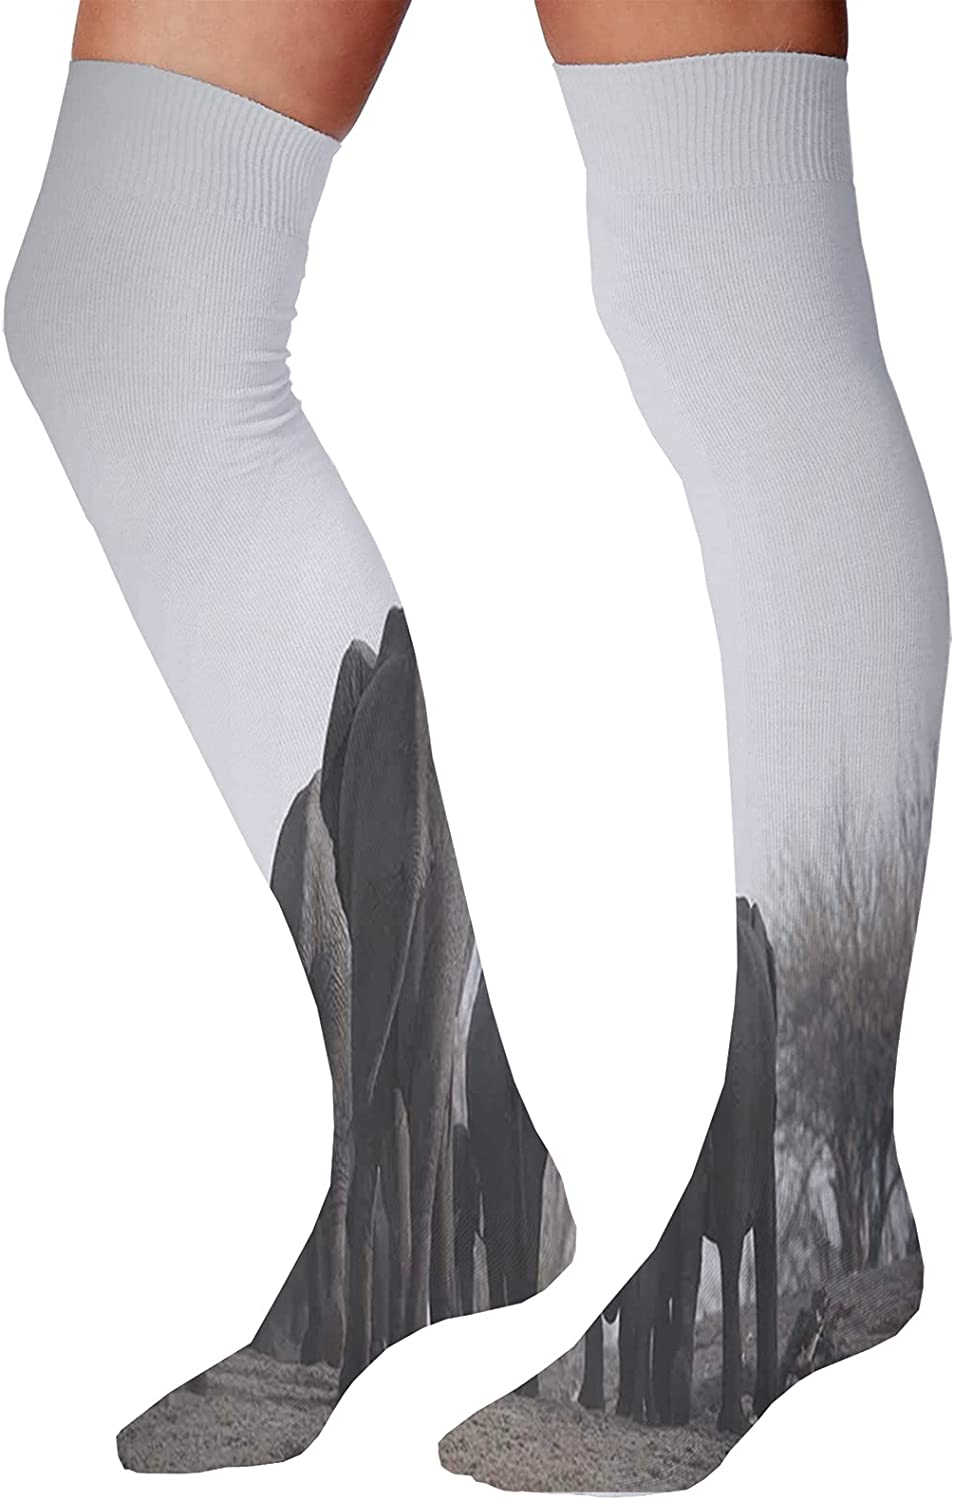 Men's and Women's Fun Socks,Image of Bamboo Trees in Rain Forest Far Eastern Wildlife Tropical Nature Inspired Style